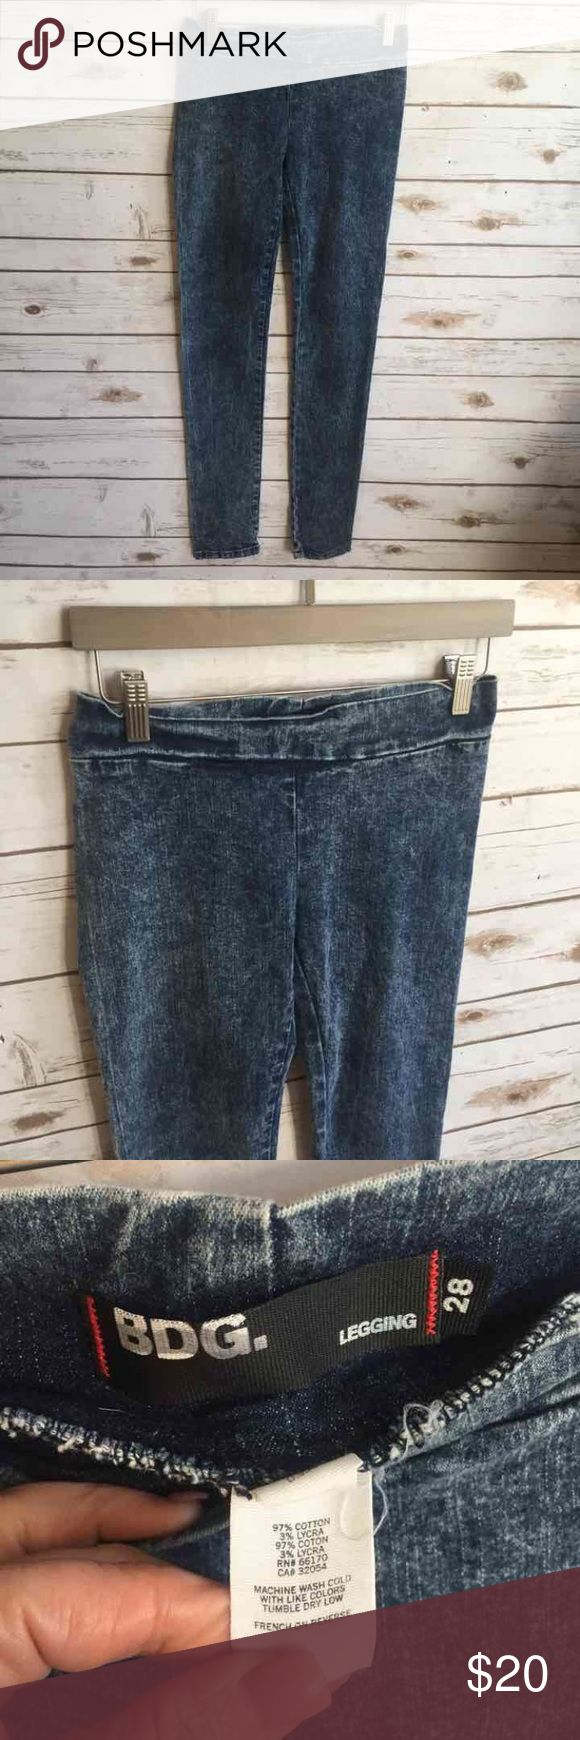 """Urban Outfitters Denim Leggings Acid Wash Urban Outfitters Denim Leggings Acid Wash Excellent condition BDG 29"""" inseam  Thank you for looking and please check out the rest of my closet. Urban Outfitters Jeans Skinny"""